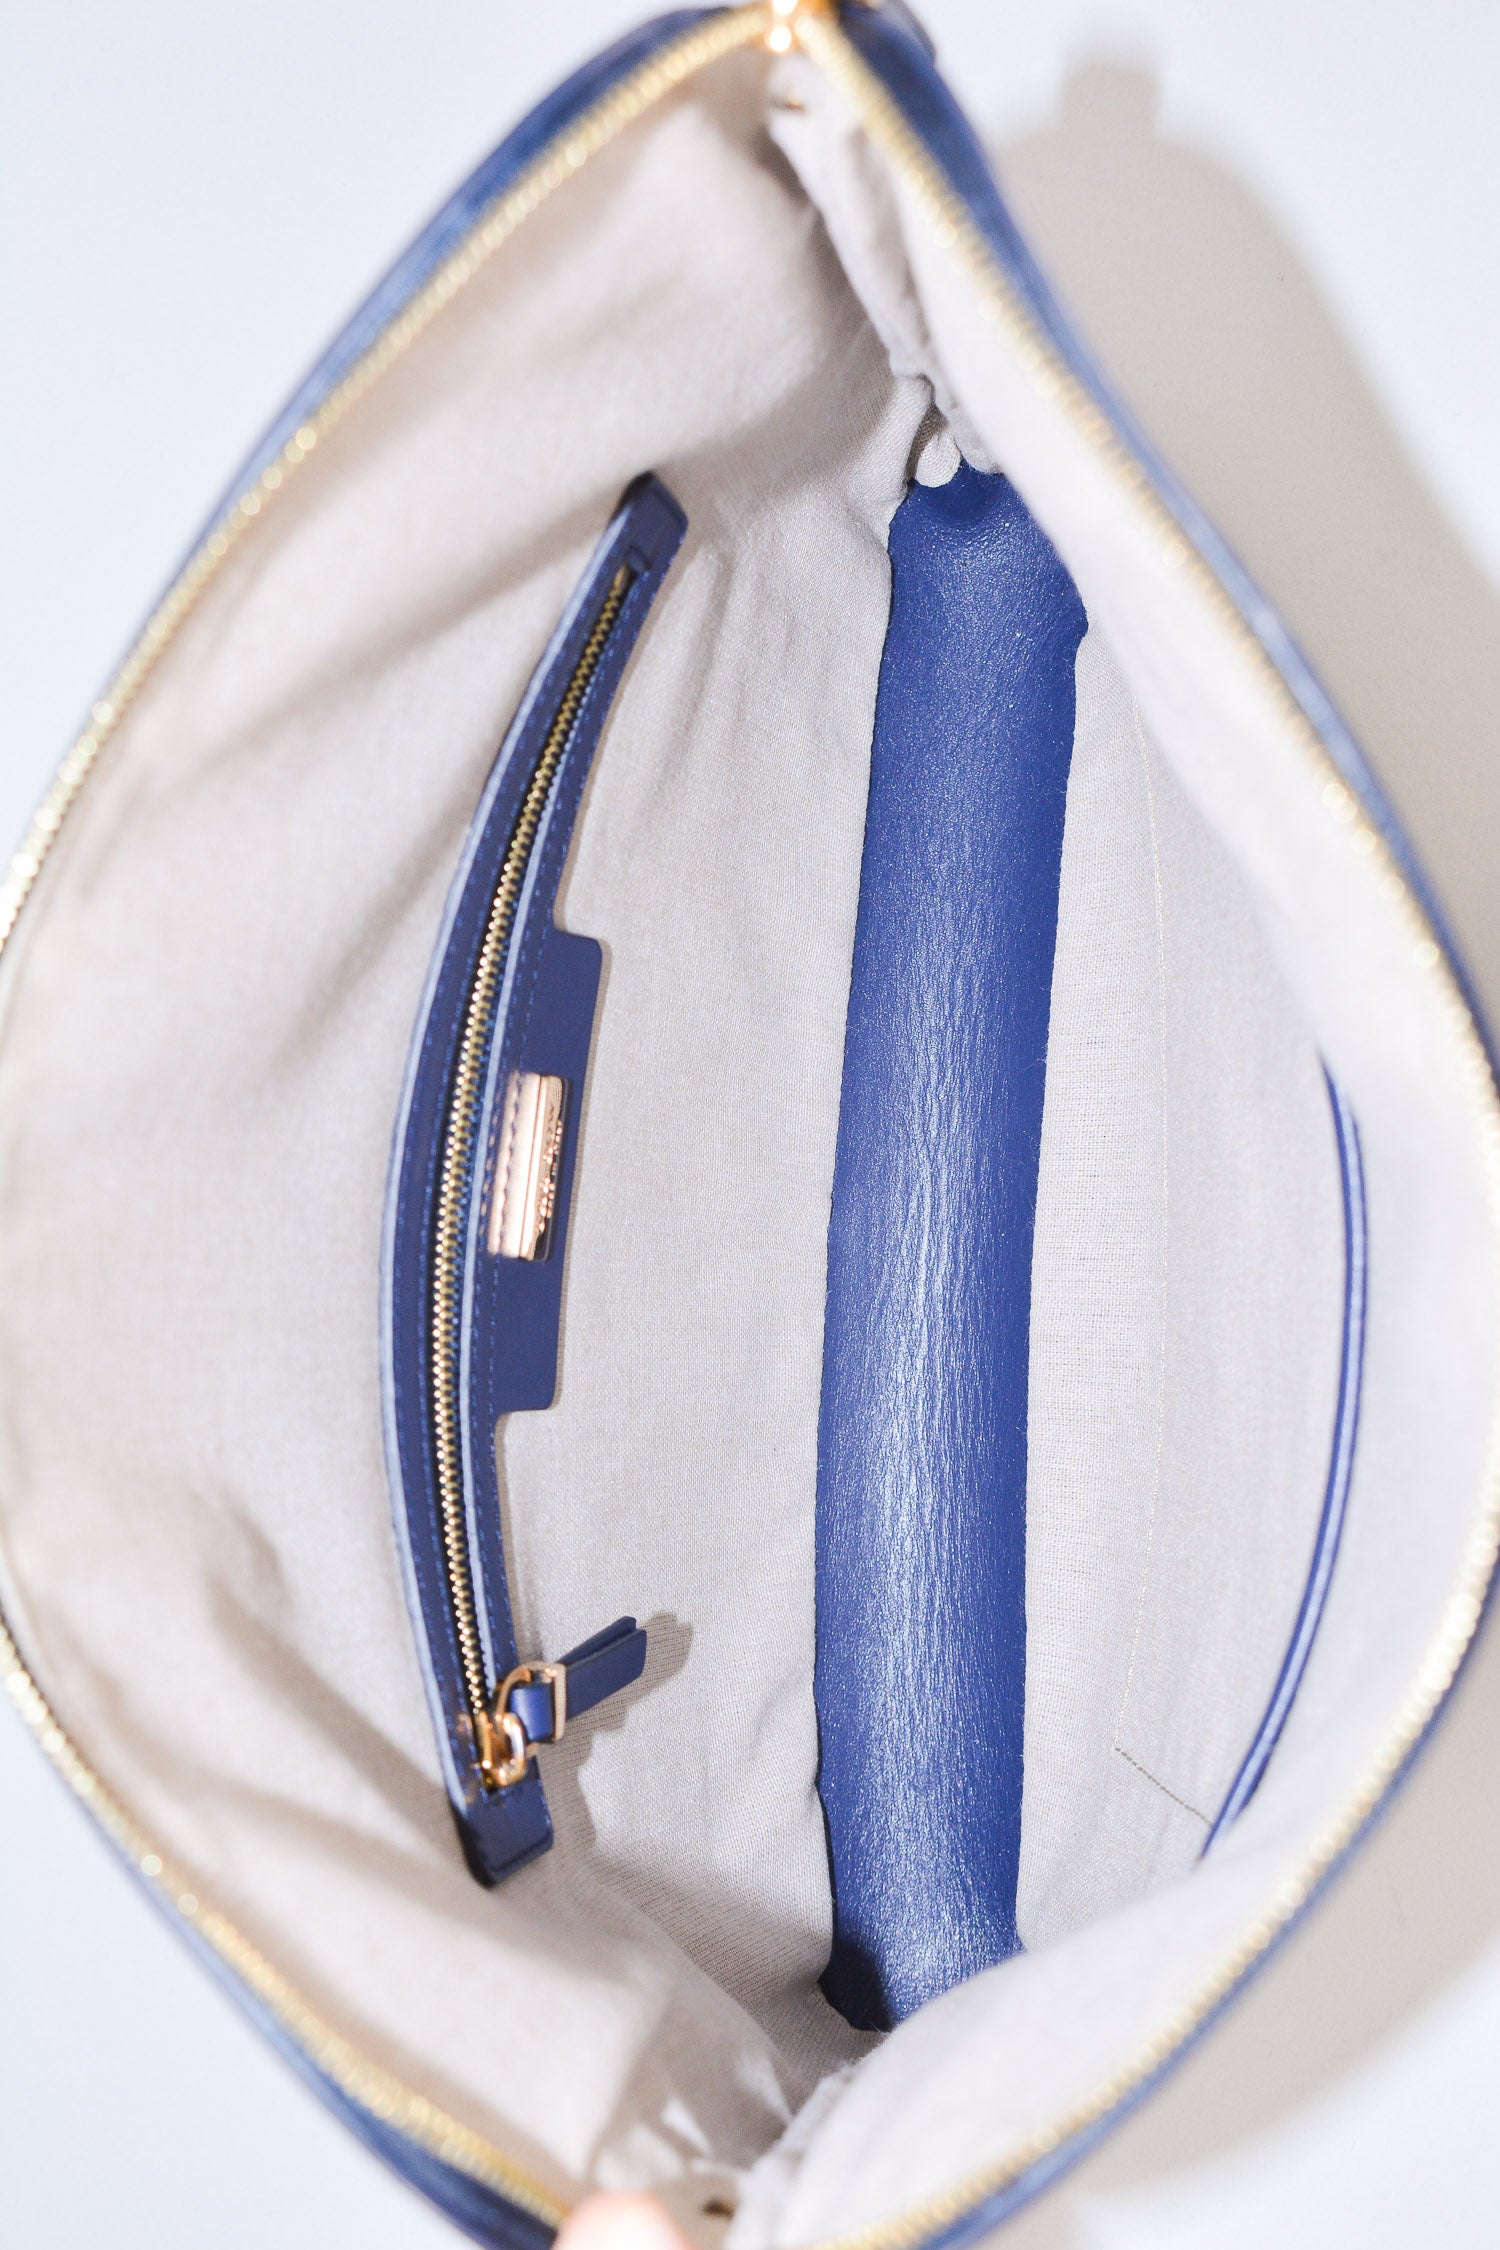 The Row Navy Leather Bag